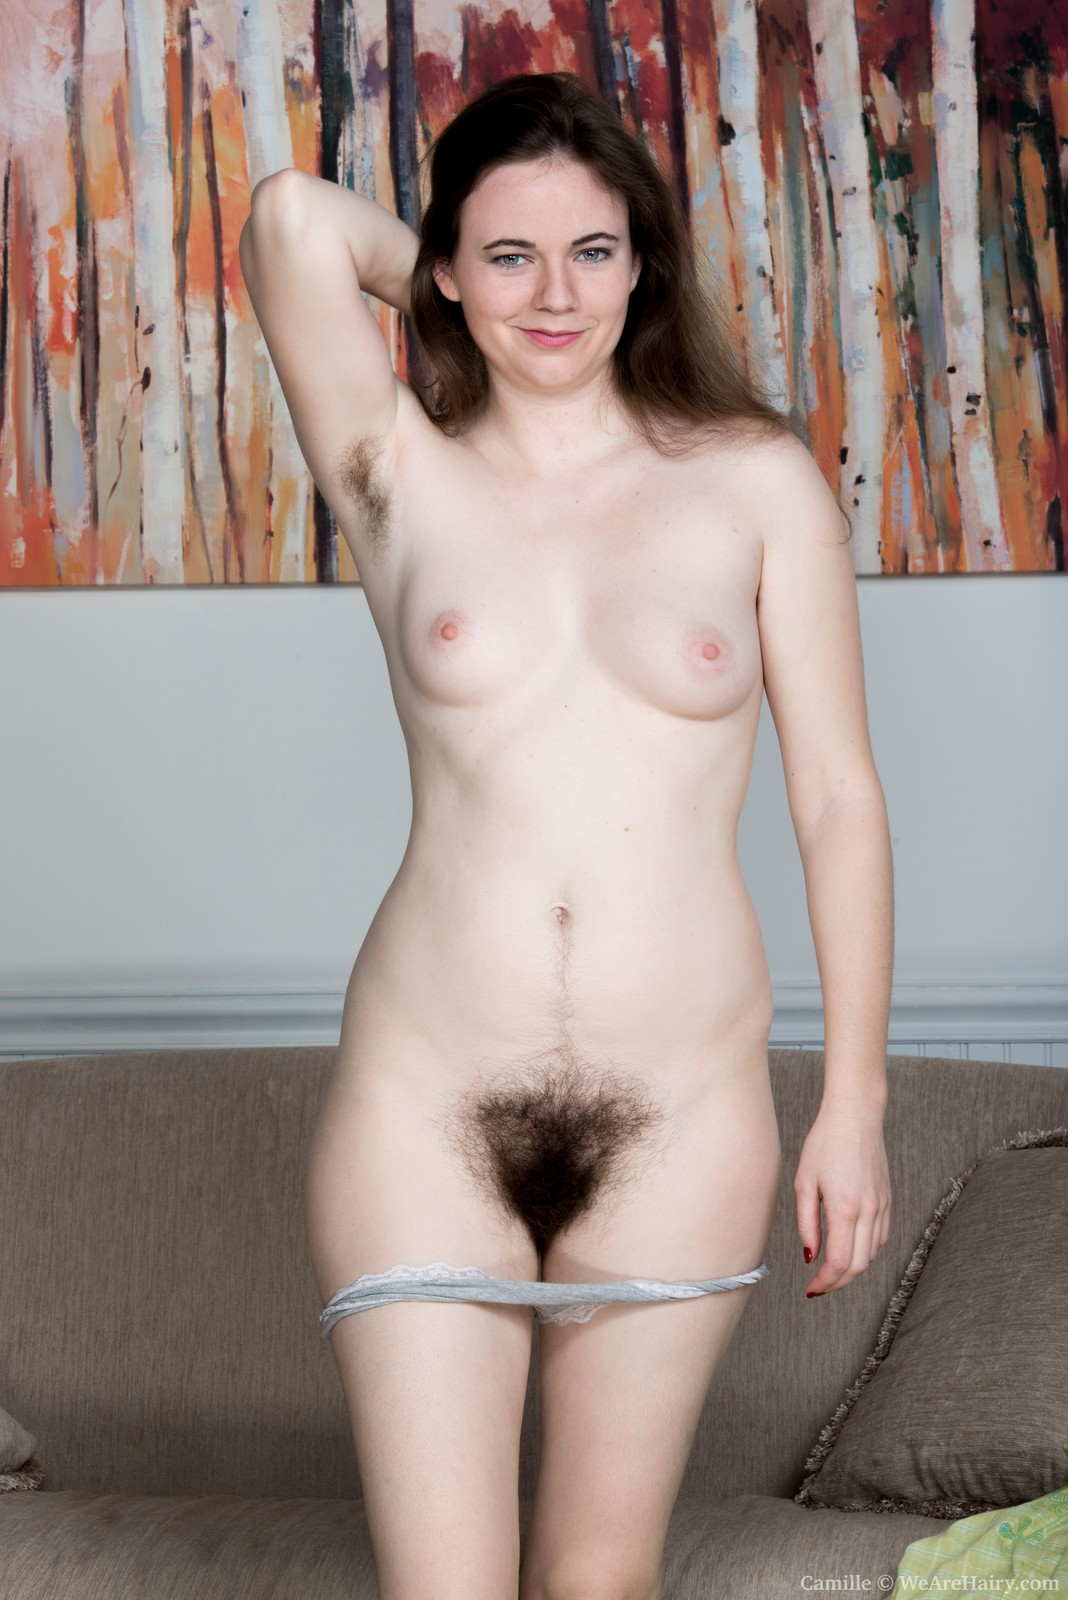 Hairy female model nude